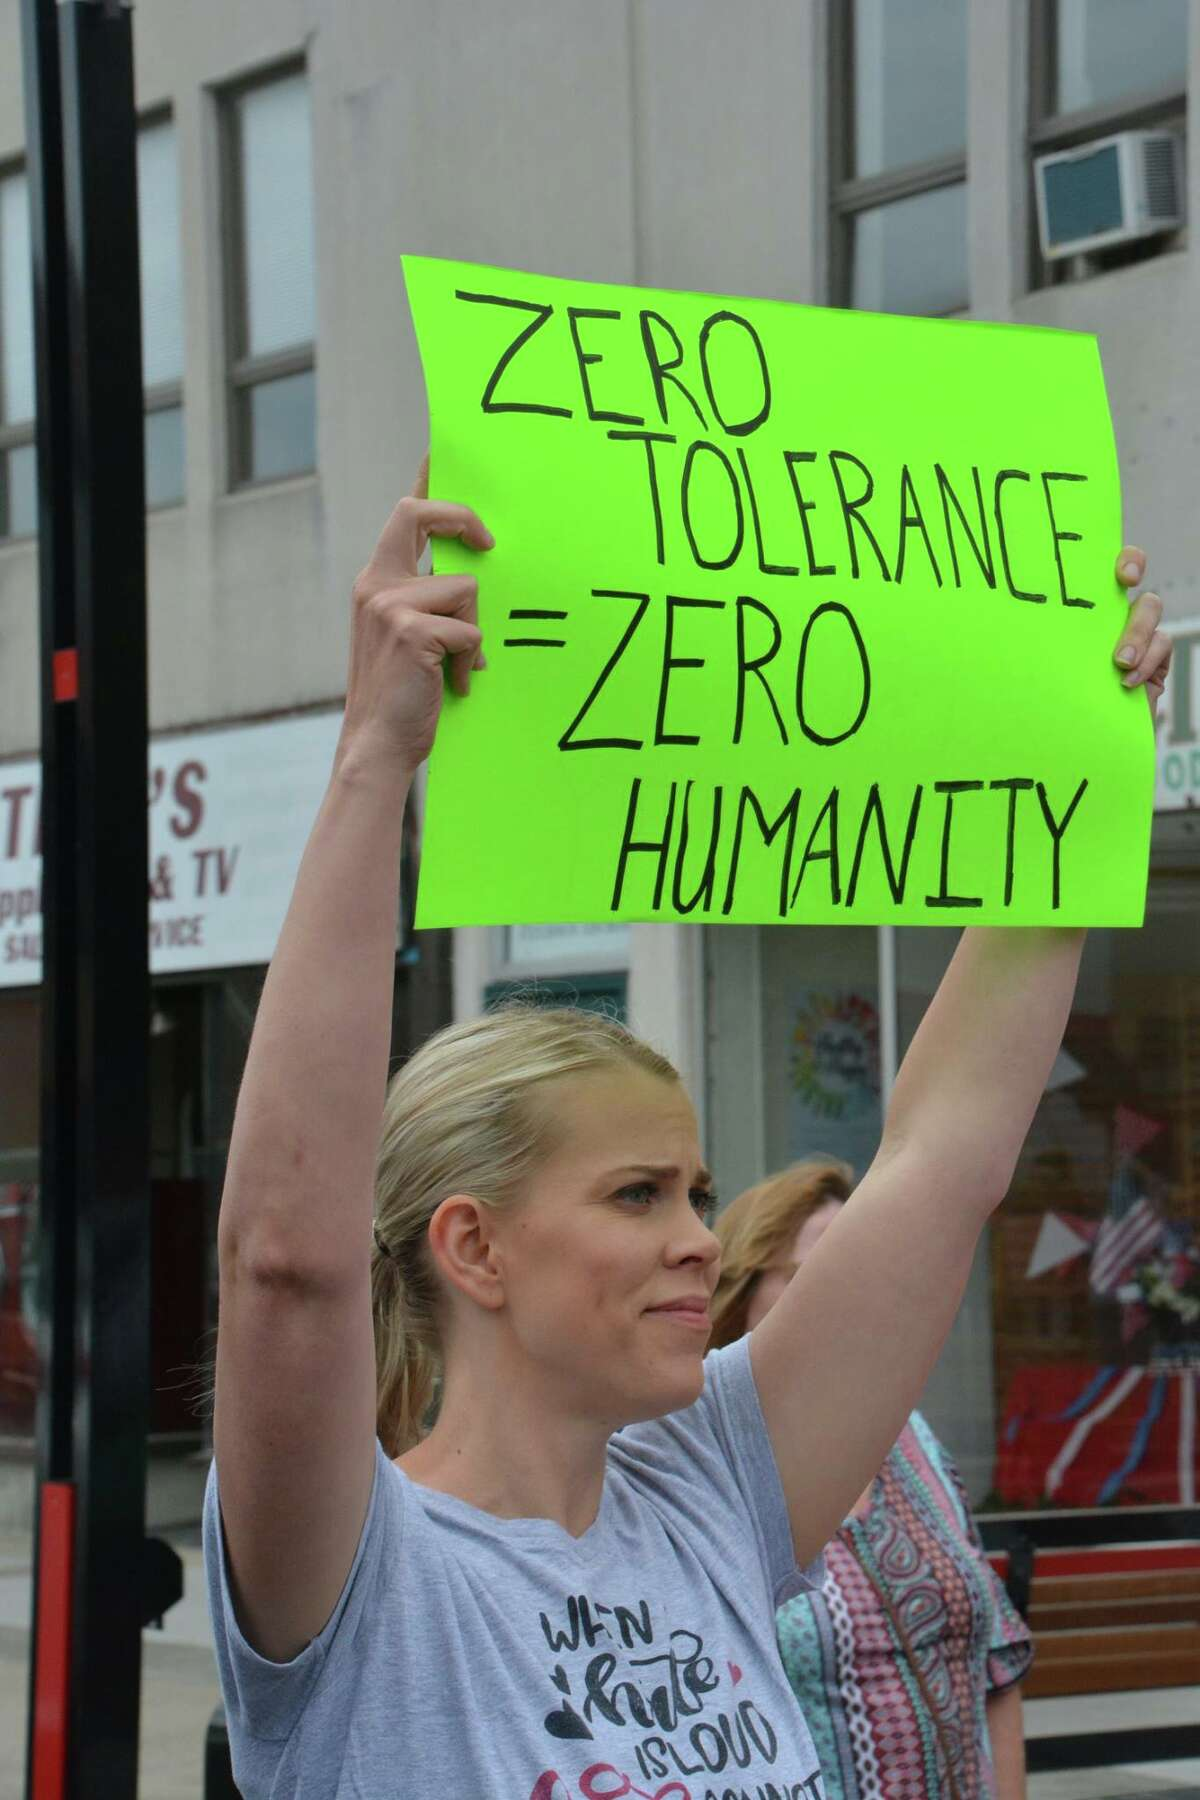 Scenes from the 'Keep Families Together' protest Tuesday, June 19, 2018 in downtown Midland. Protesters oppose the decision to separate immigrant families at the border. (Photo provided/P3Images)